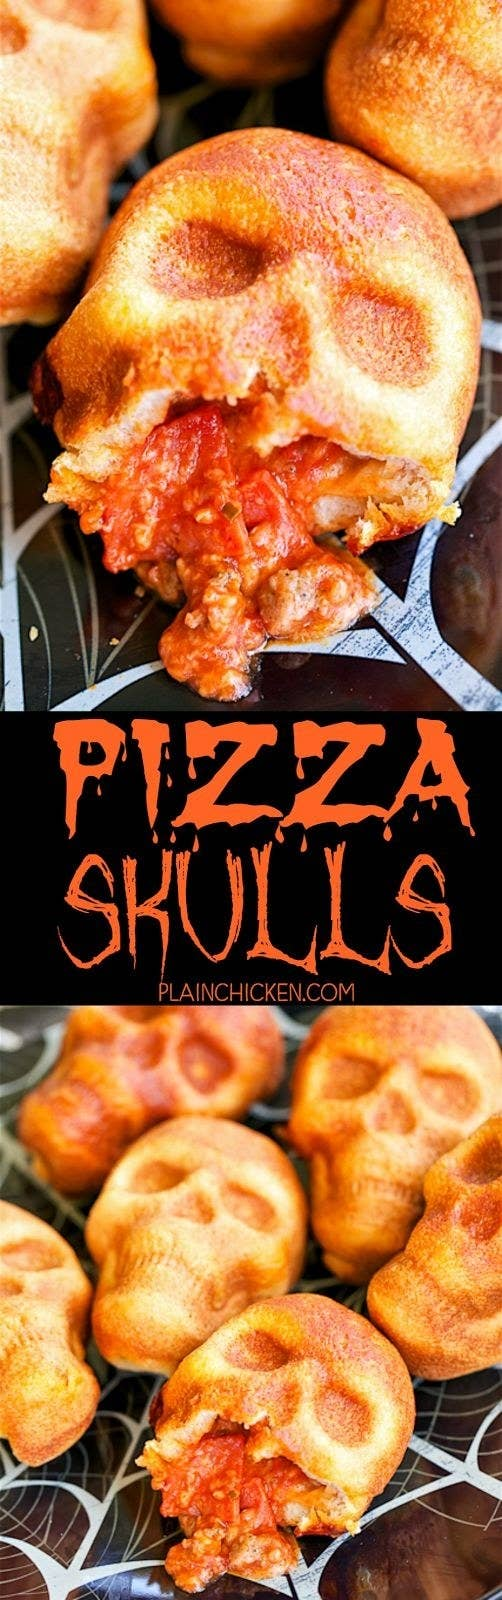 These incredible looking pizza skulls from Plain Chicken have been saved 50,000 times.